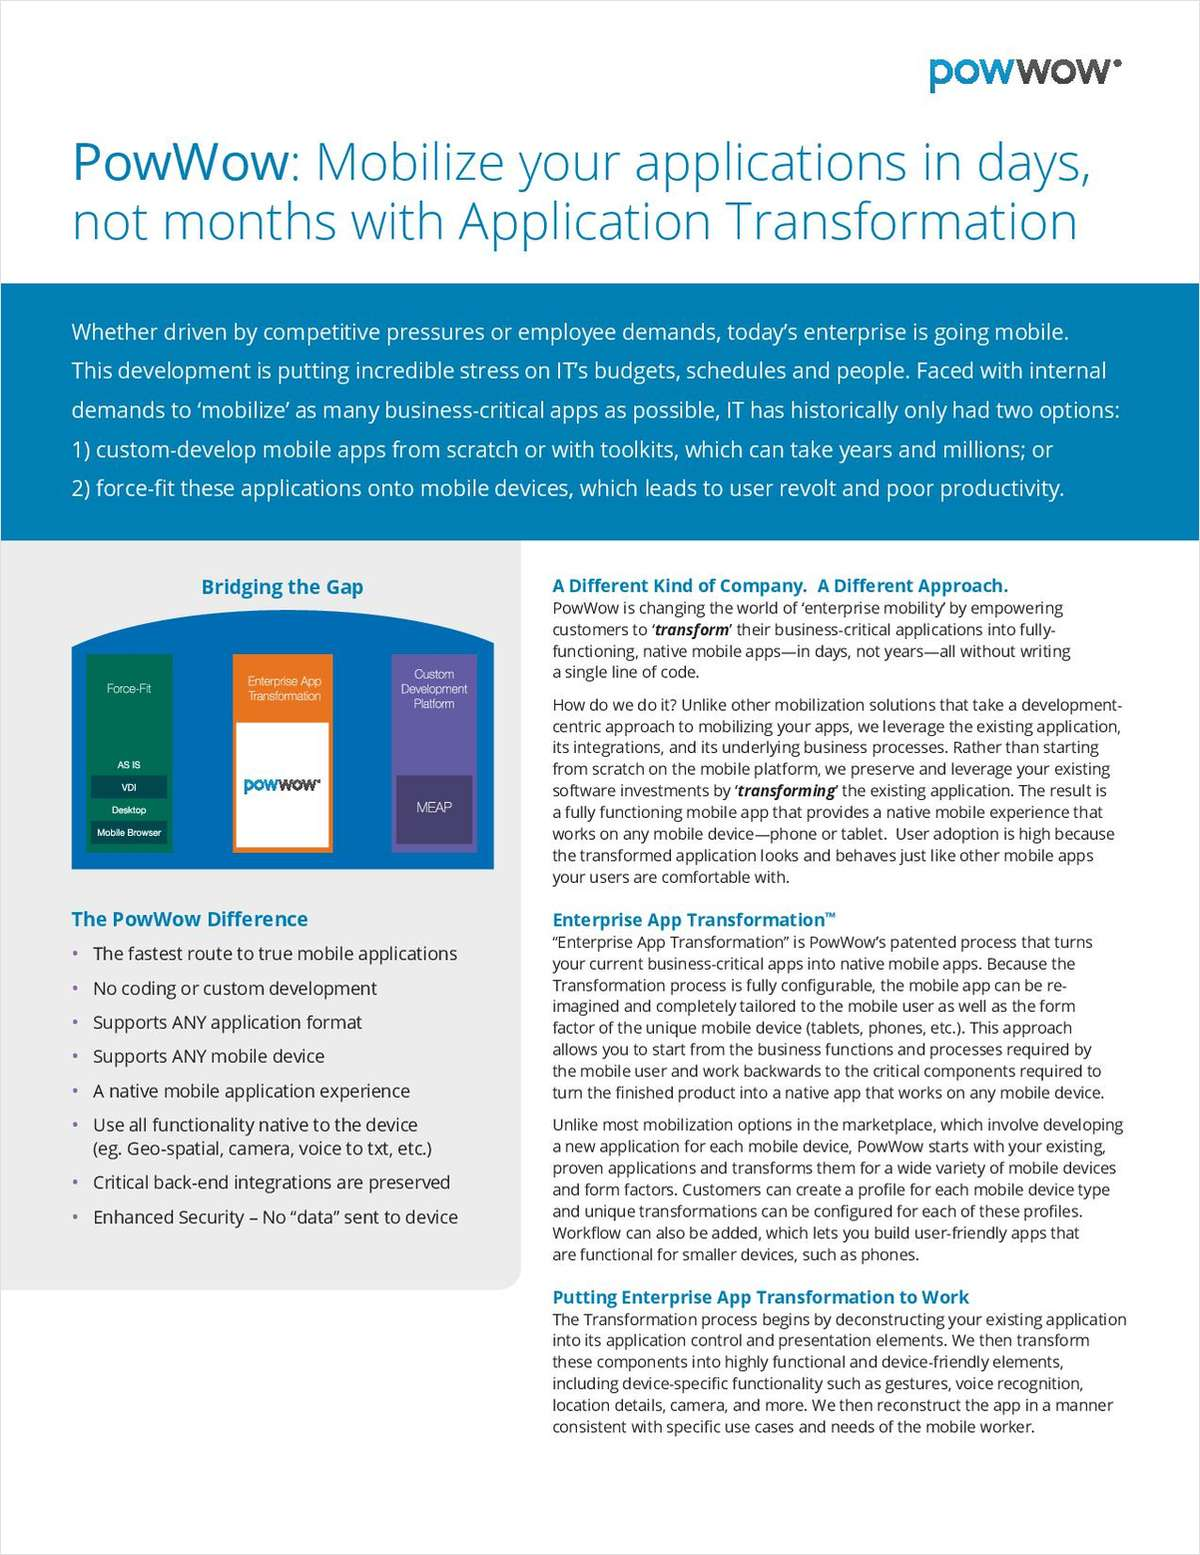 A New Way to Mobilize Your Enterprise Applications